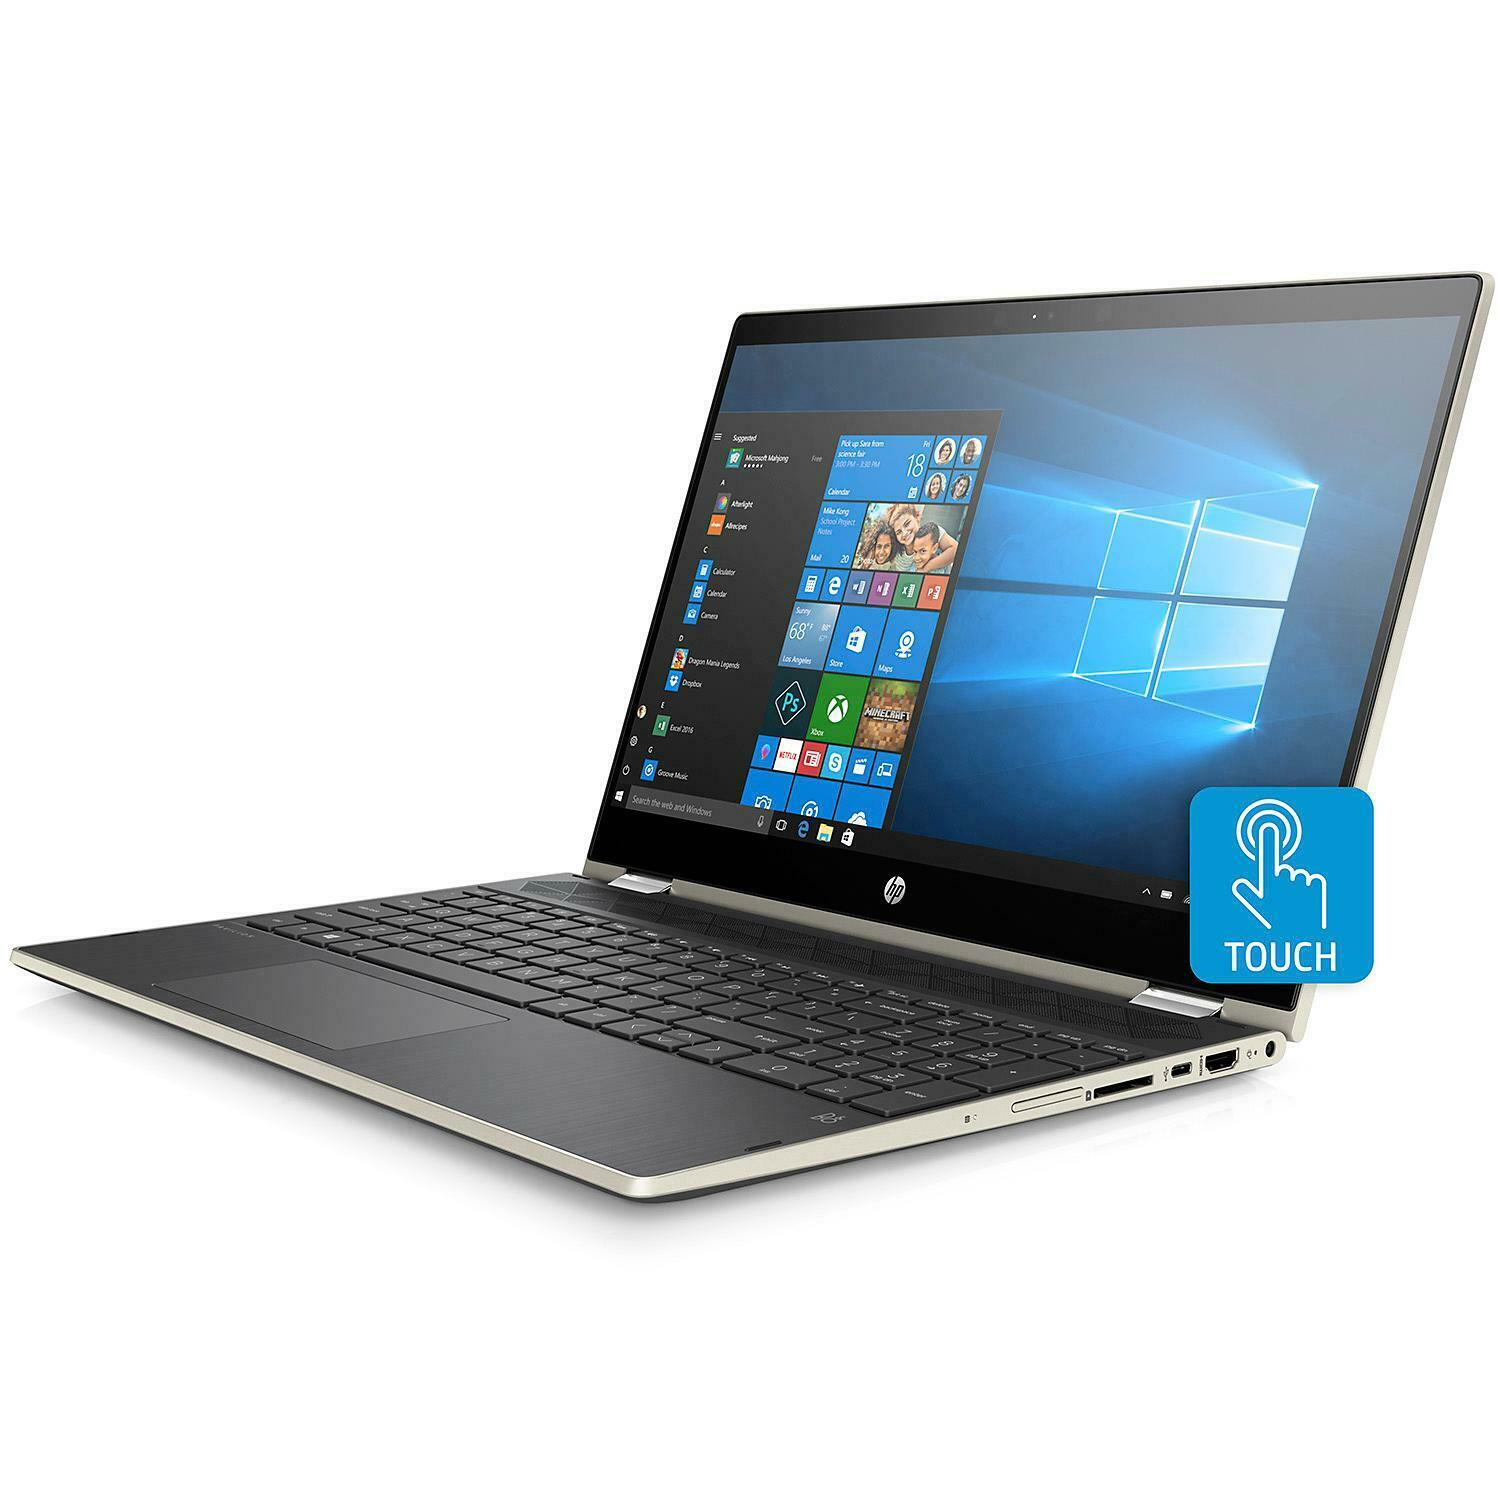 "HP Pavilion x360 15-cr0083cl 15.6"" FHD IPS Touch i7-8550U 8G"